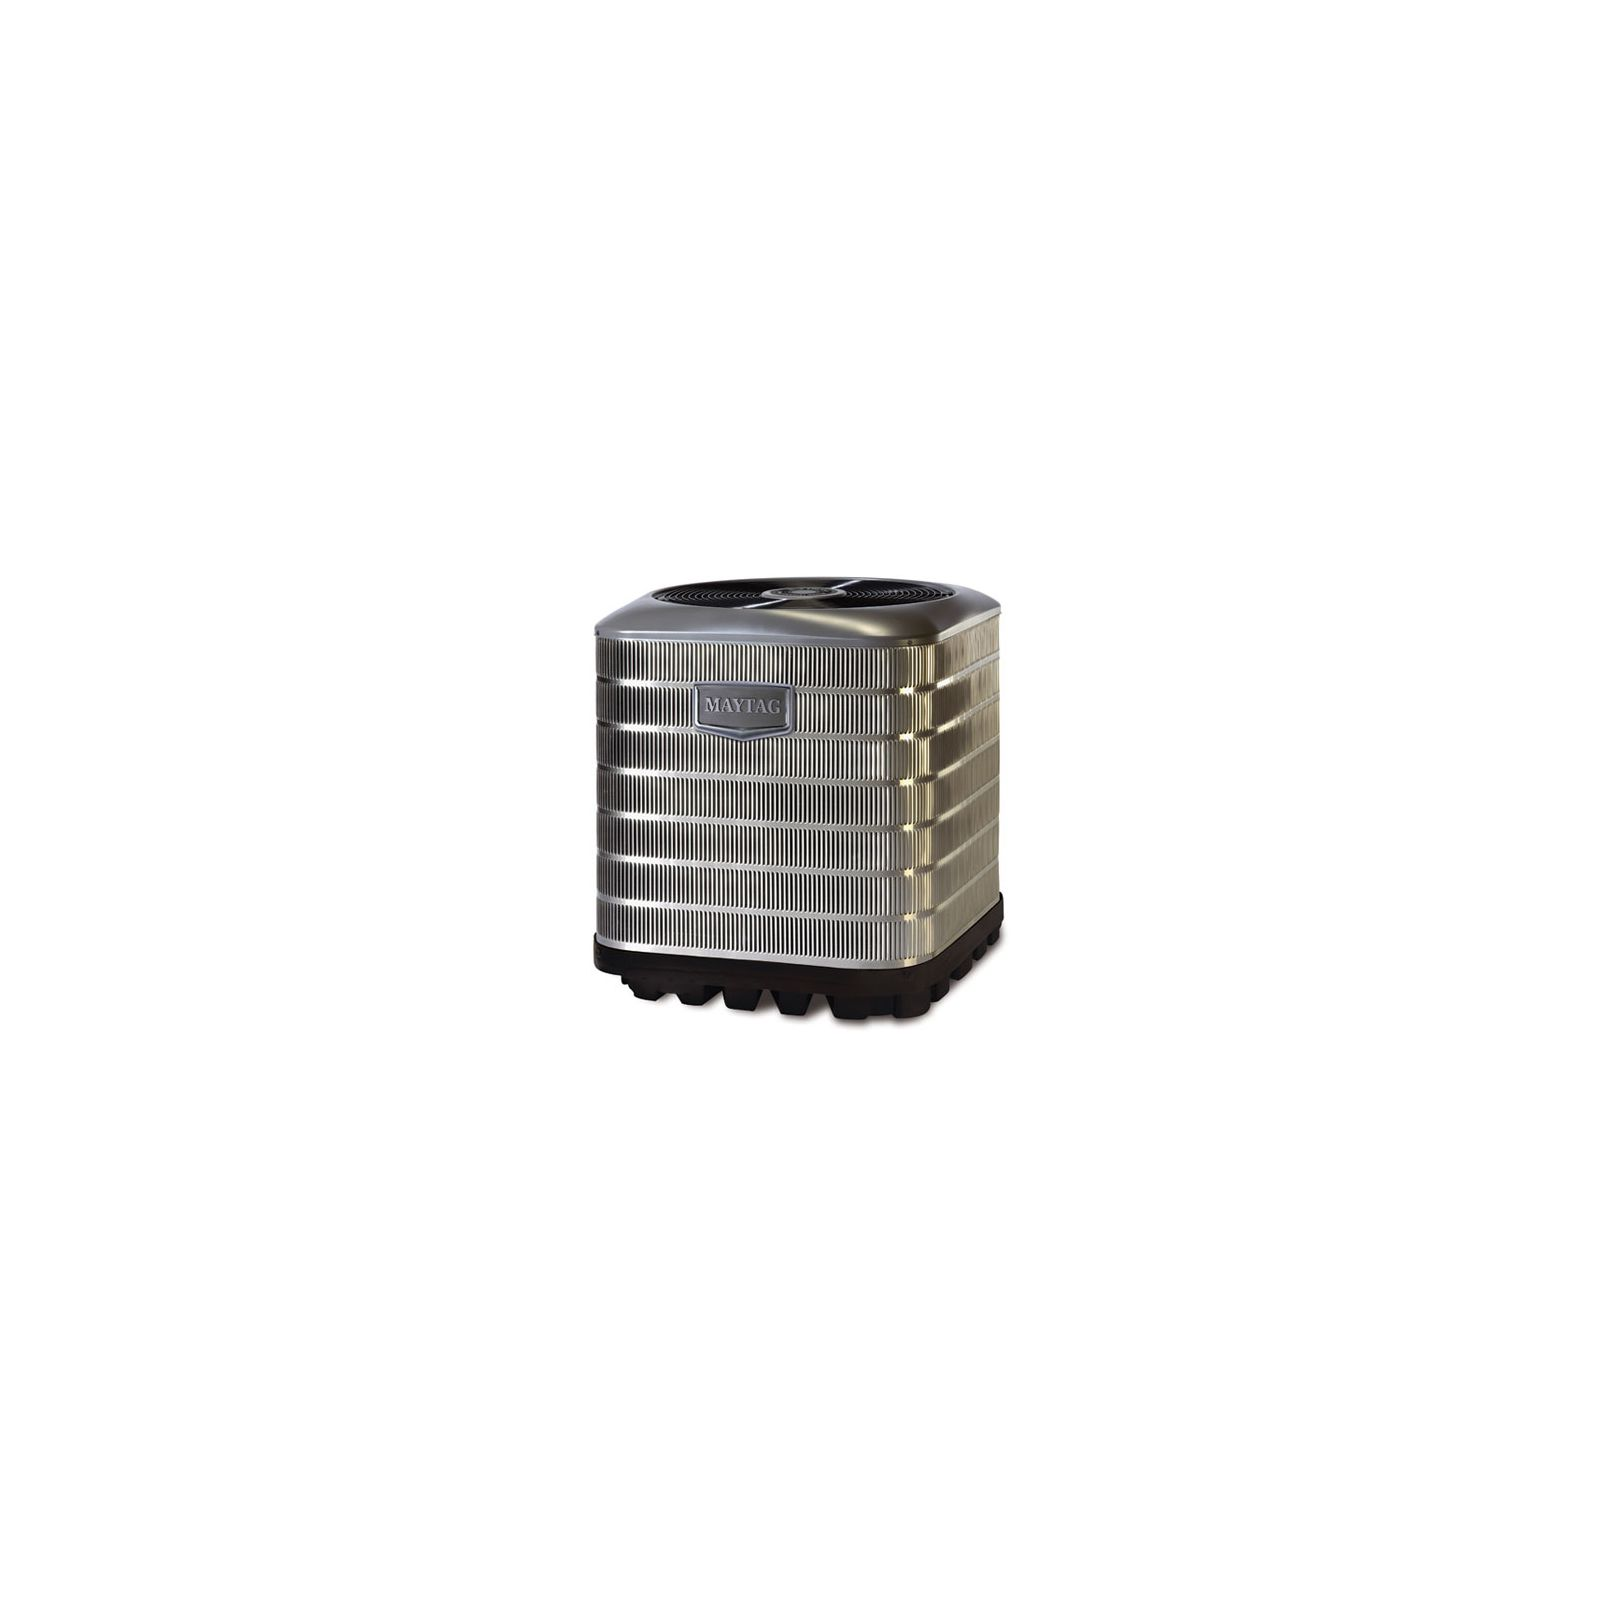 Maytag 921223P - PSH4BG060K - 5 Ton 19 SEER M1200 iQ Drive Extra High Efficiency Heat Pump, R410A